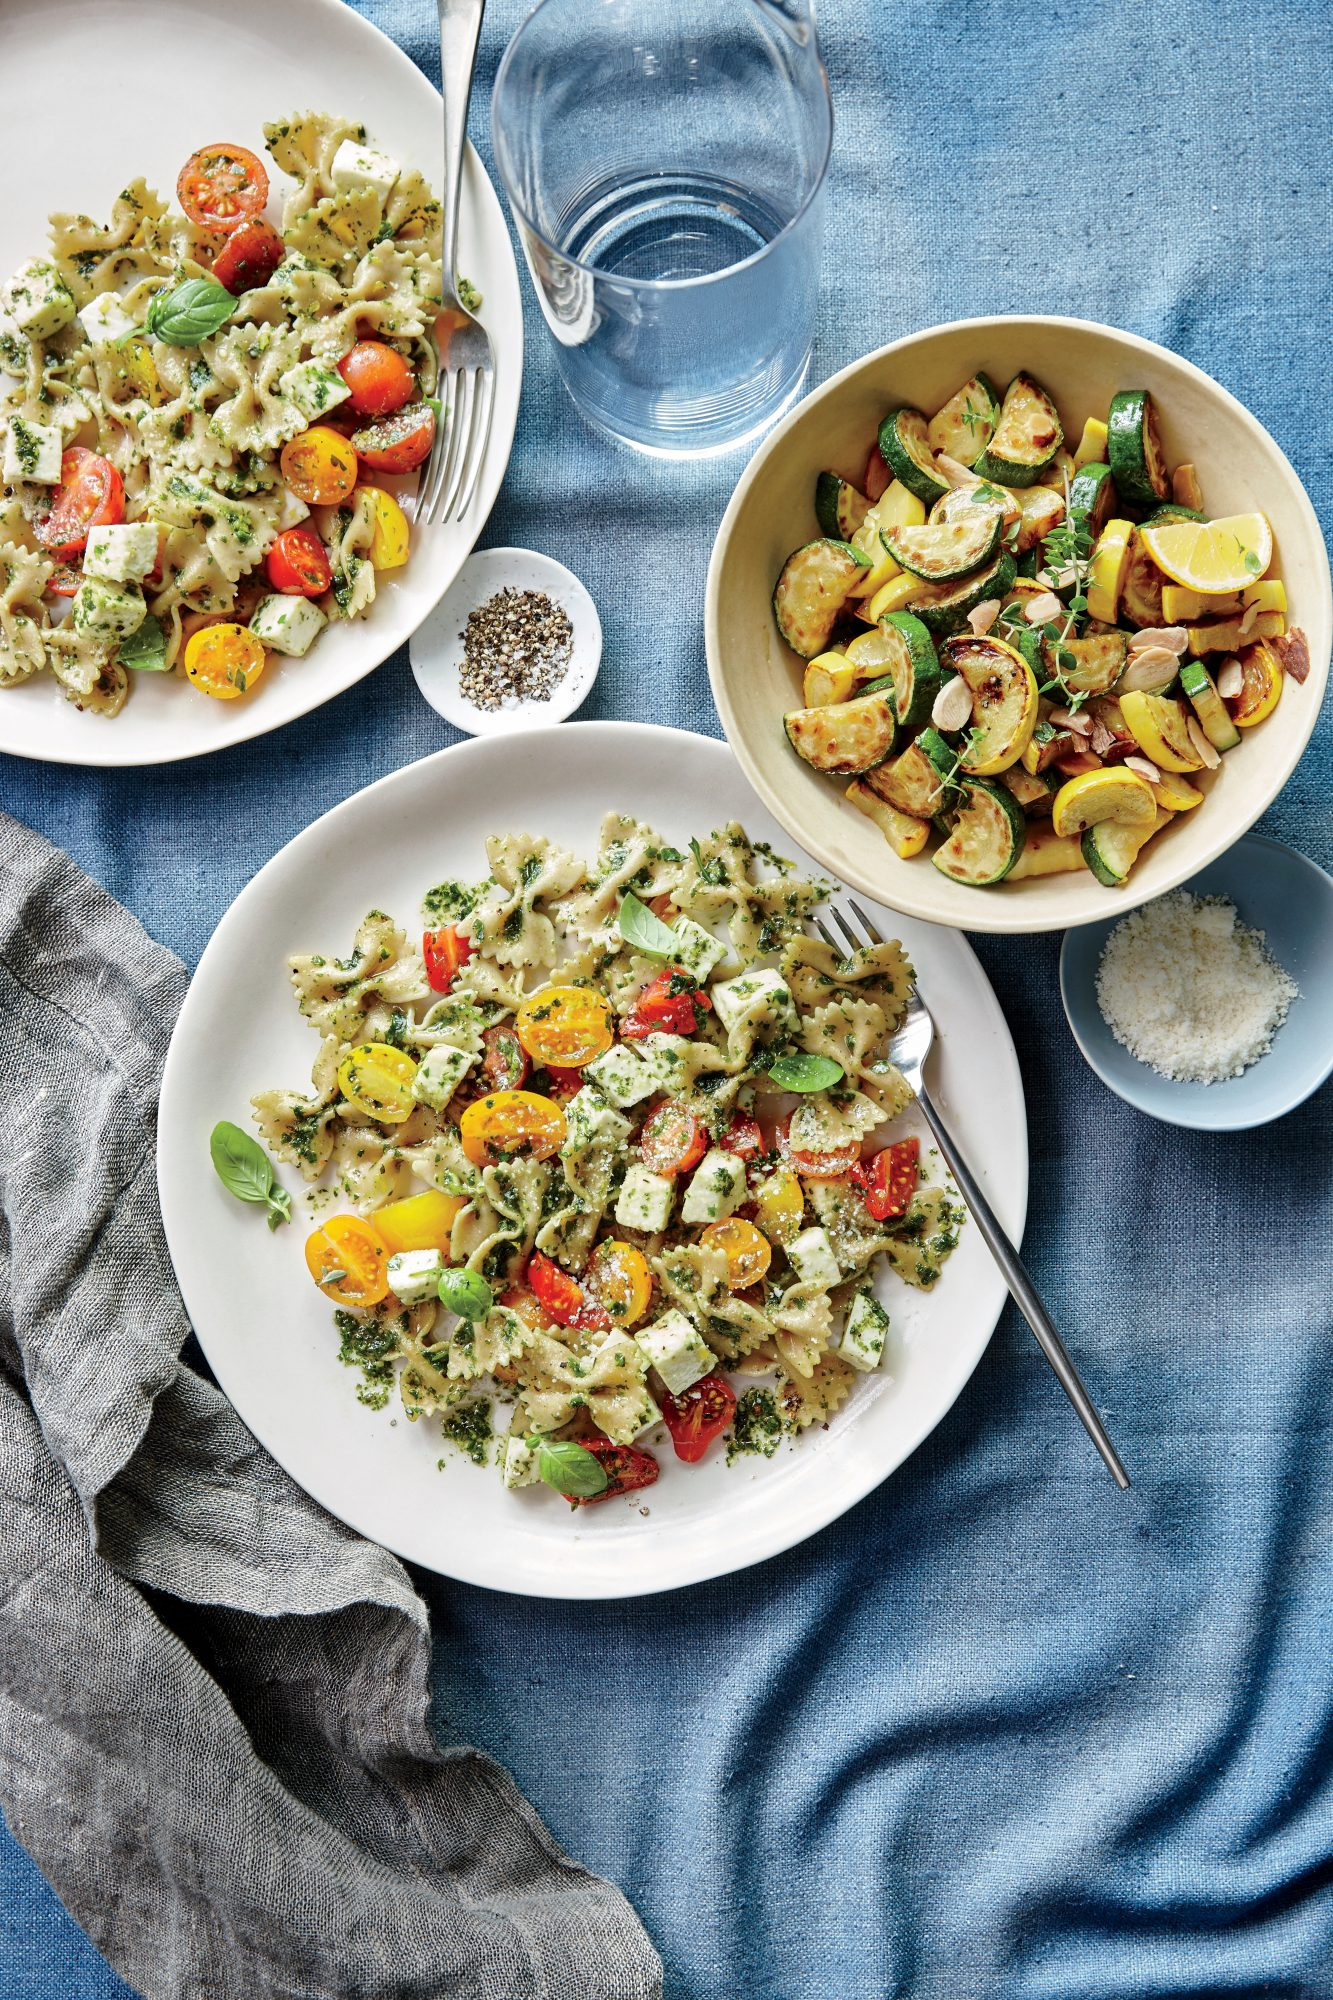 Sauteed Summer Squash with Thyme and Almonds